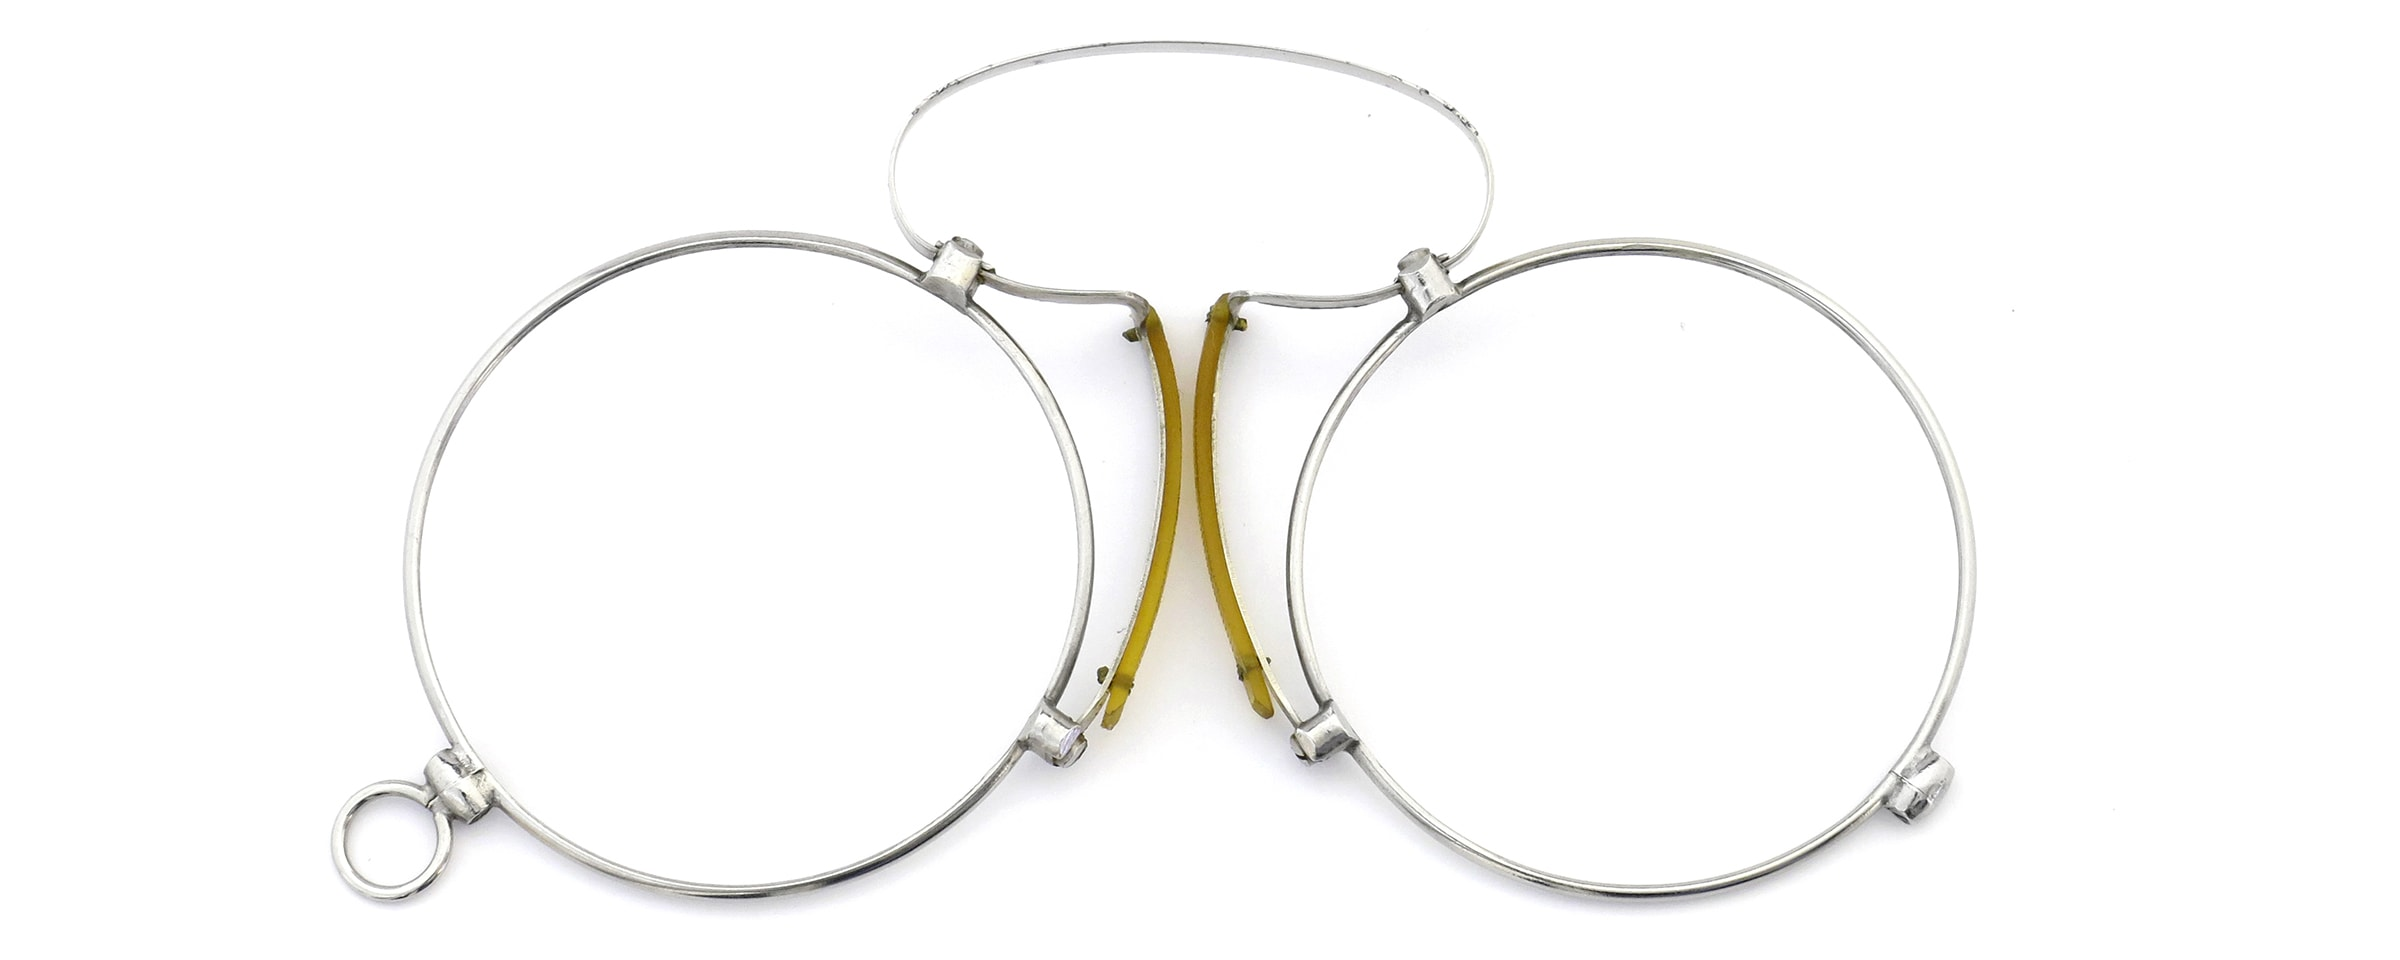 Lesca Speciality collection Pince Nez [v4] Round